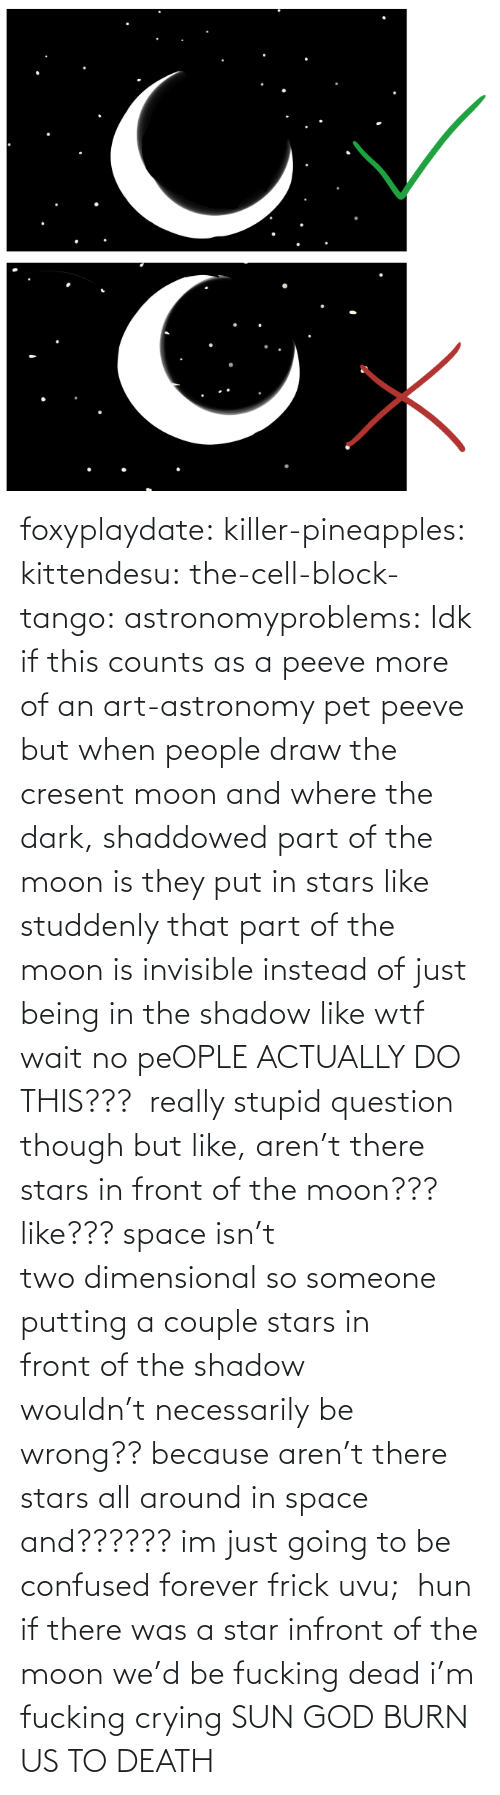 In Space: foxyplaydate: killer-pineapples:  kittendesu:  the-cell-block-tango:  astronomyproblems:  Idk if this counts as a peeve more of an art-astronomy pet peeve but when people draw the cresent moon and where the dark, shaddowed part of the moon is they put in stars like studdenly that part of the moon is invisible instead of just being in the shadow like wtf  wait no peOPLE ACTUALLY DO THIS???   really stupid question though but like, aren't there stars in front of the moon??? like??? space isn't two dimensional so someone putting a couple stars in front of the shadow wouldn't necessarily be wrong?? because aren't there stars all around in space and?????? im just going to be confused forever frick uvu;   hun if there was a star infront of the moon we'd be fucking dead  i'm fucking crying    SUN GOD BURN US TO DEATH